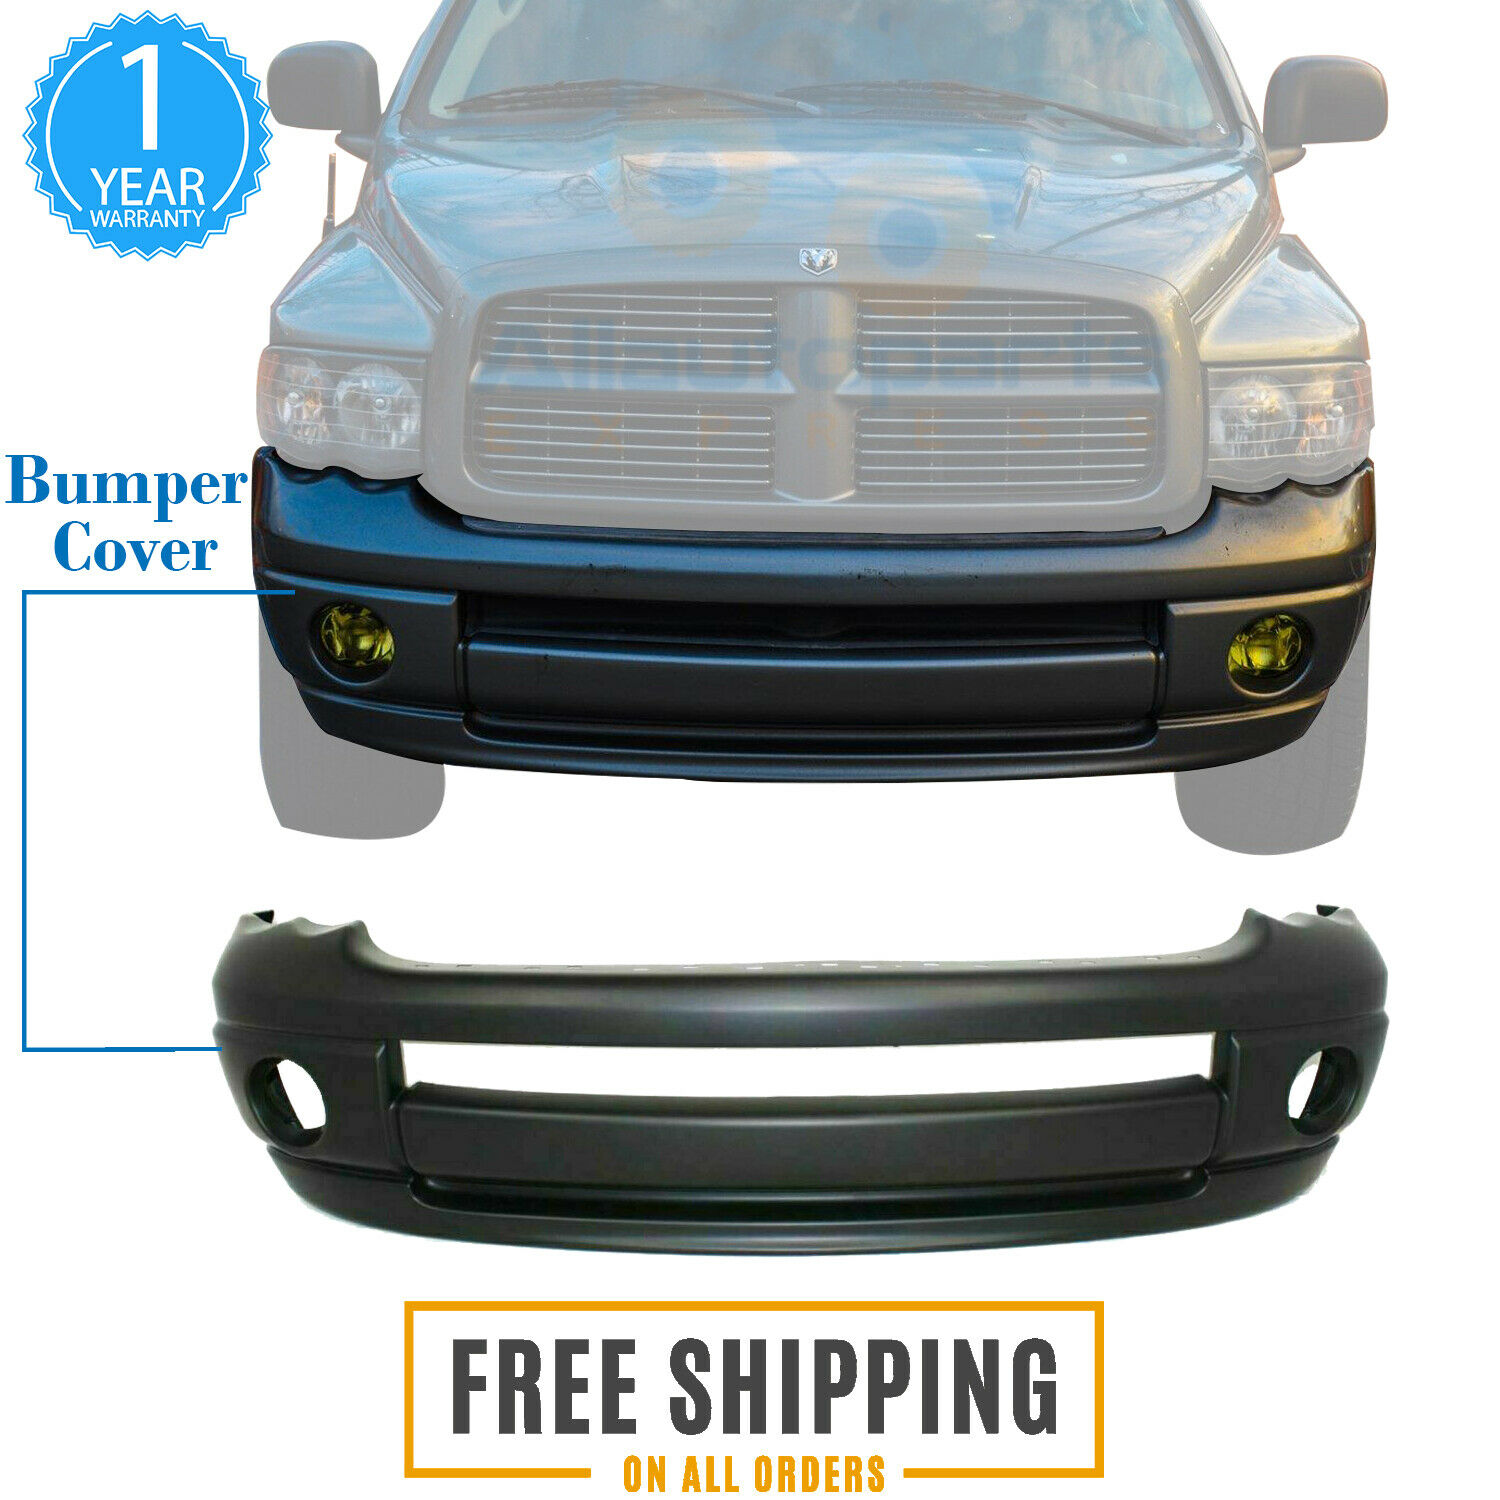 front bumper cover primed plastic for 2002 2005 dodge ram 1500 2500 3500 ebay details about front bumper cover primed plastic for 2002 2005 dodge ram 1500 2500 3500